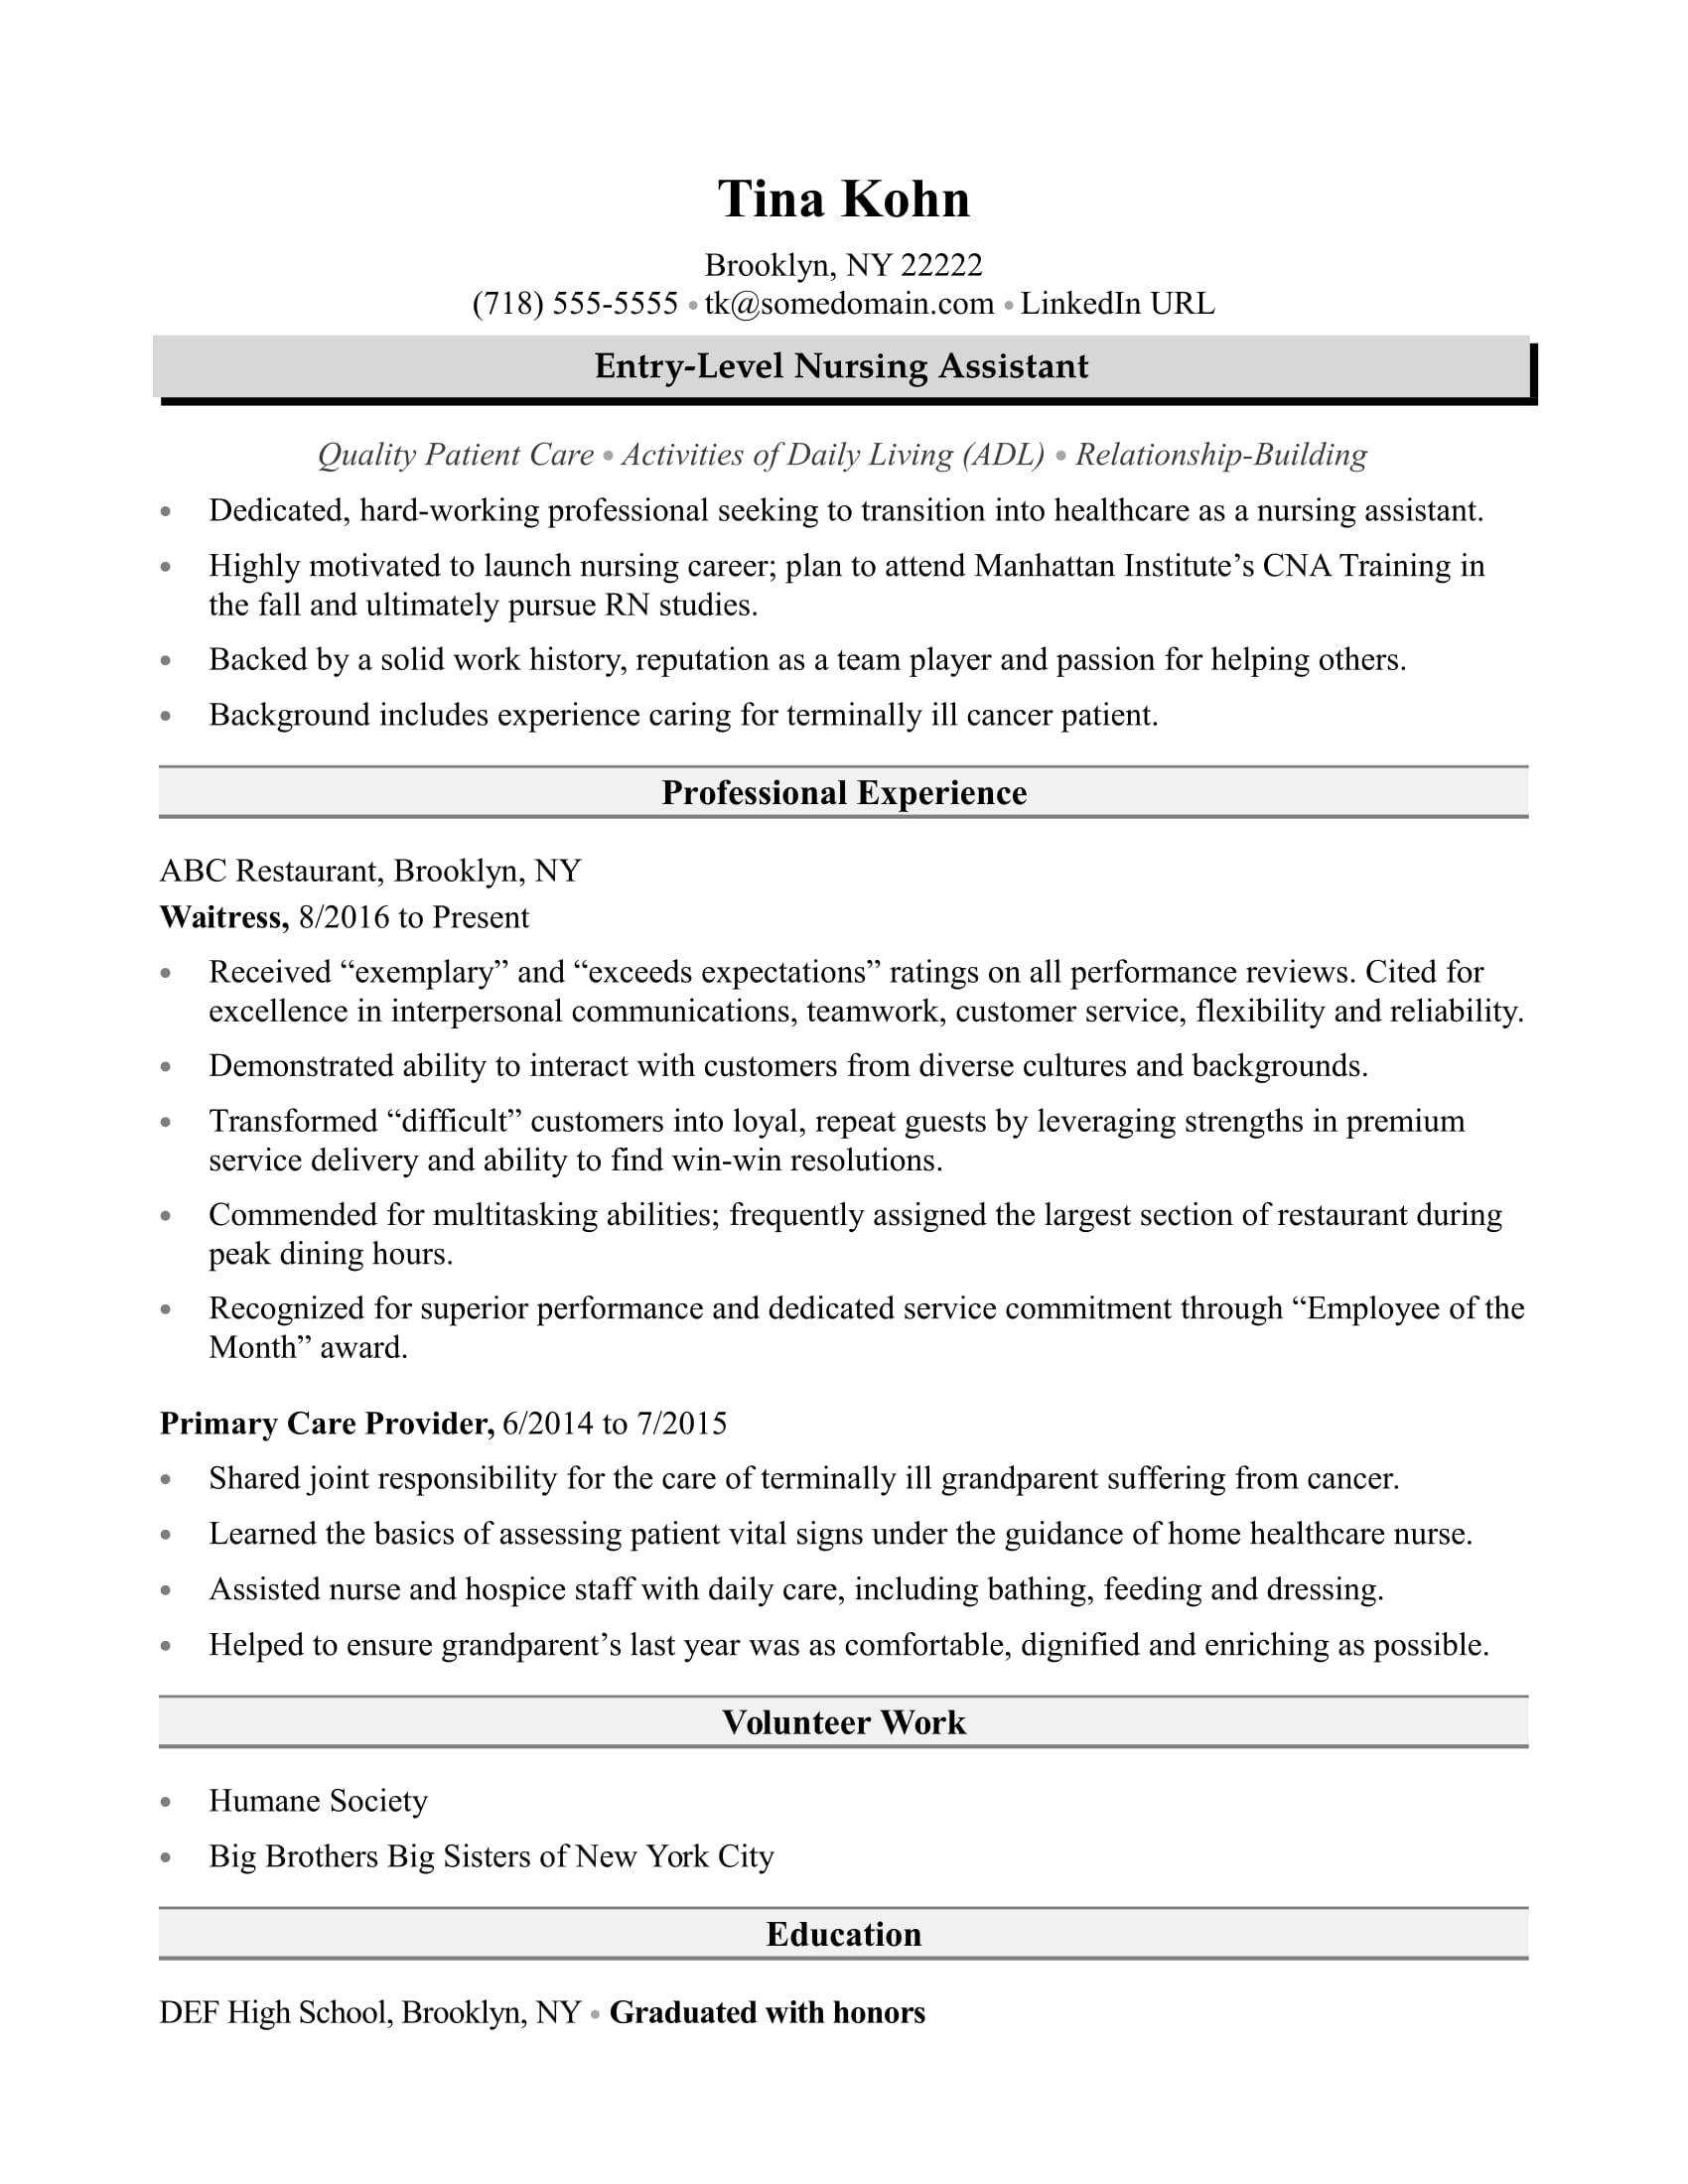 nursing assistant resume sample monster article forwarding service staff accountant Resume Article Assistant Resume